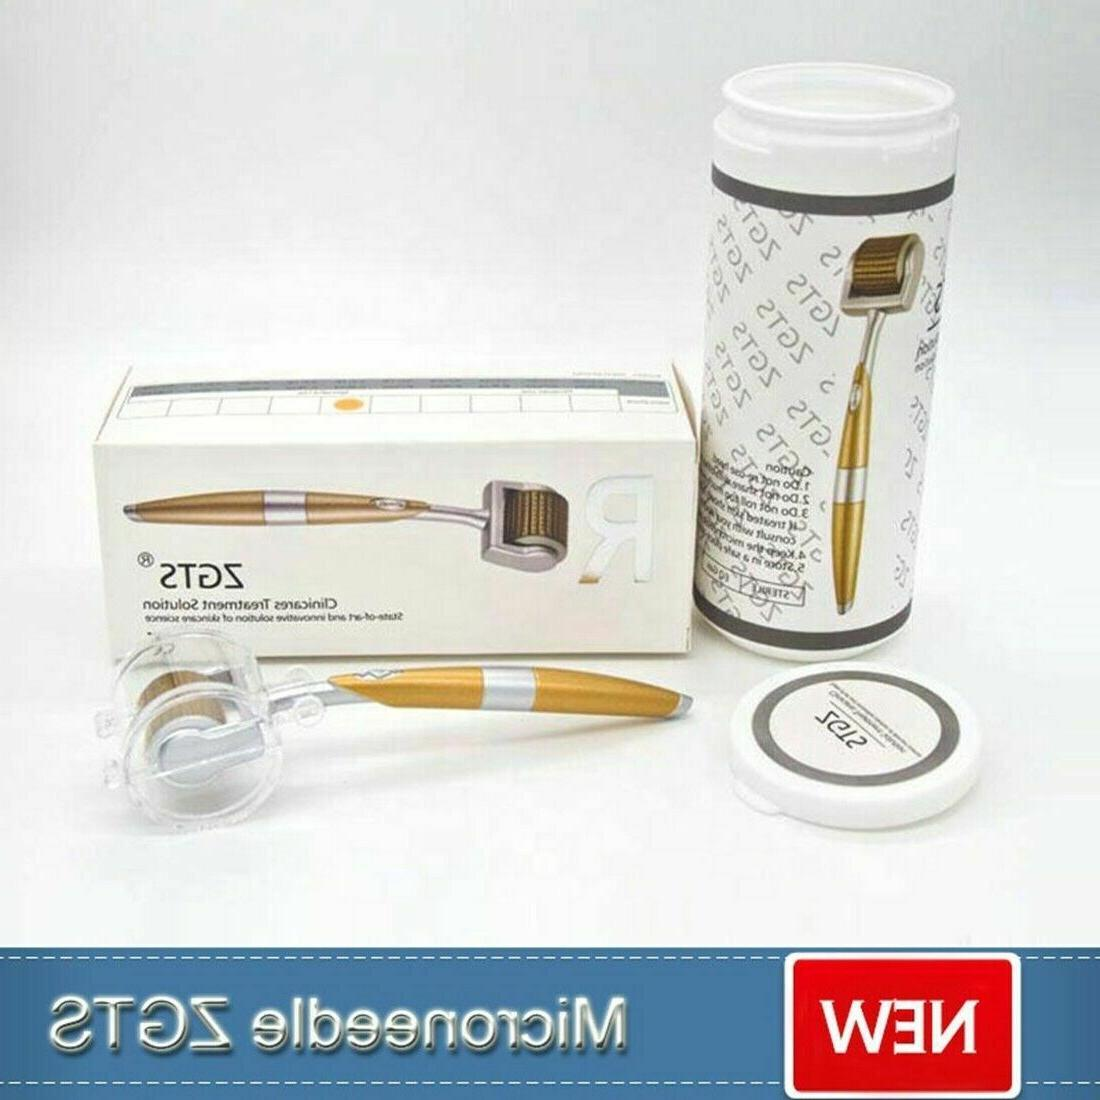 US Titanium ZGTS 192 Derma Roller Acne Removal